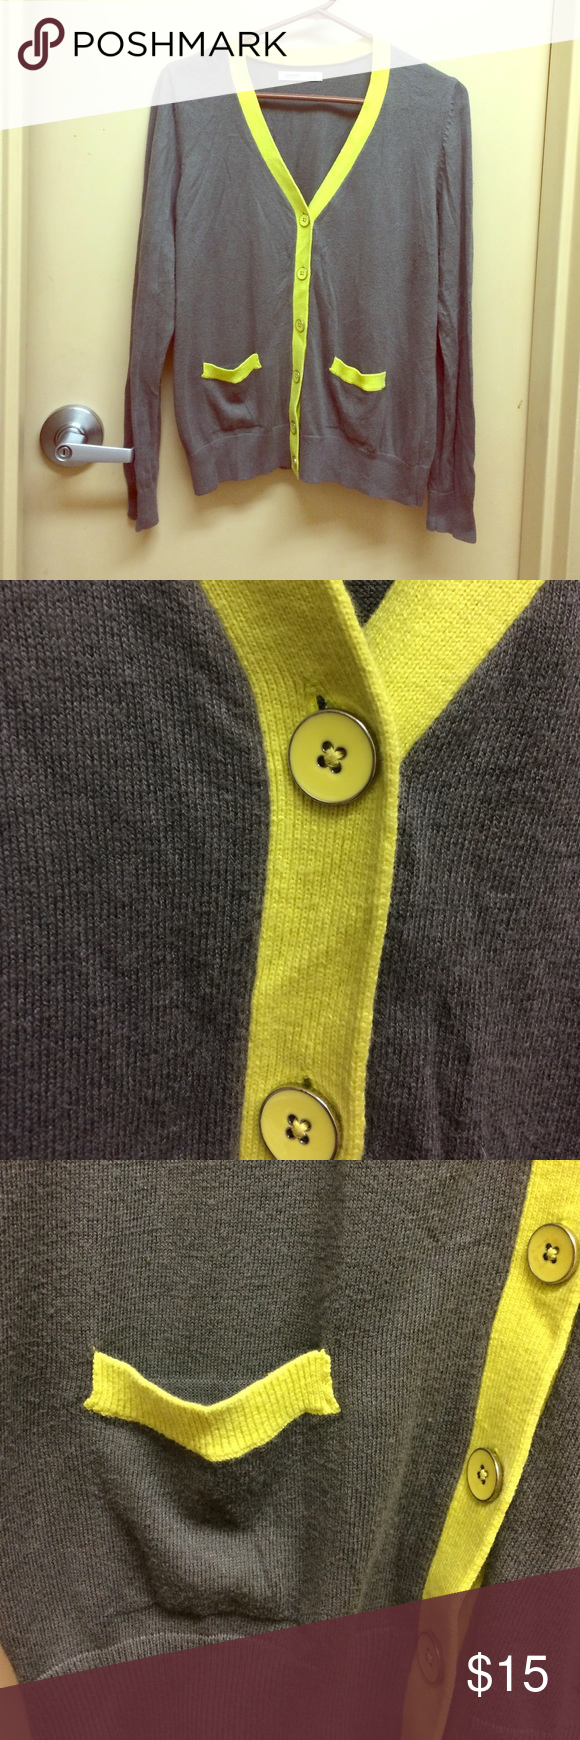 Old navy grey and green cardigan size large 6 buttons. Two cute ...